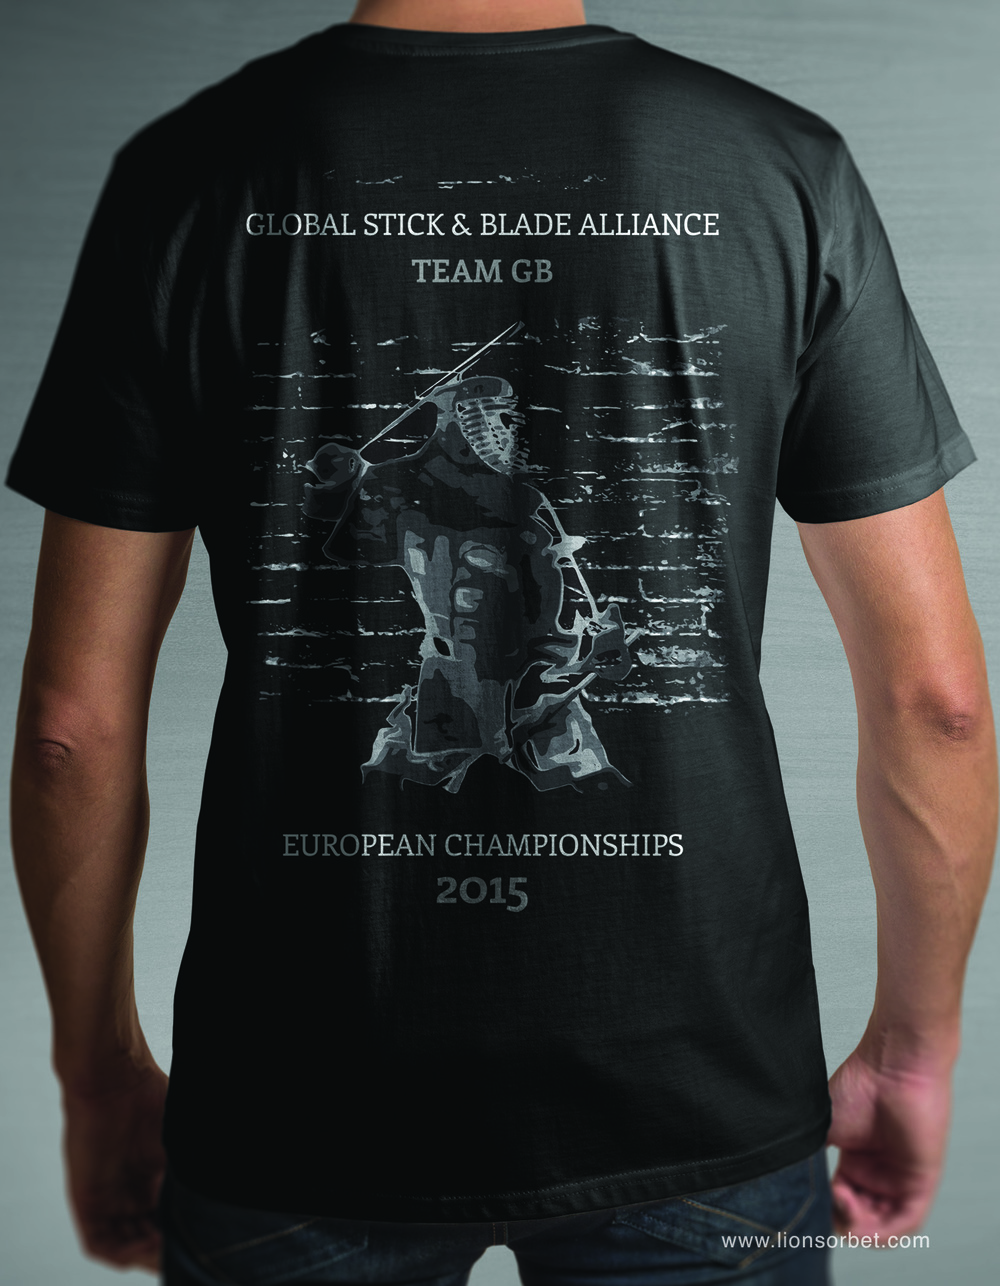 Squad Tee Design for the GSBA European Championships held in Great Britain 2015